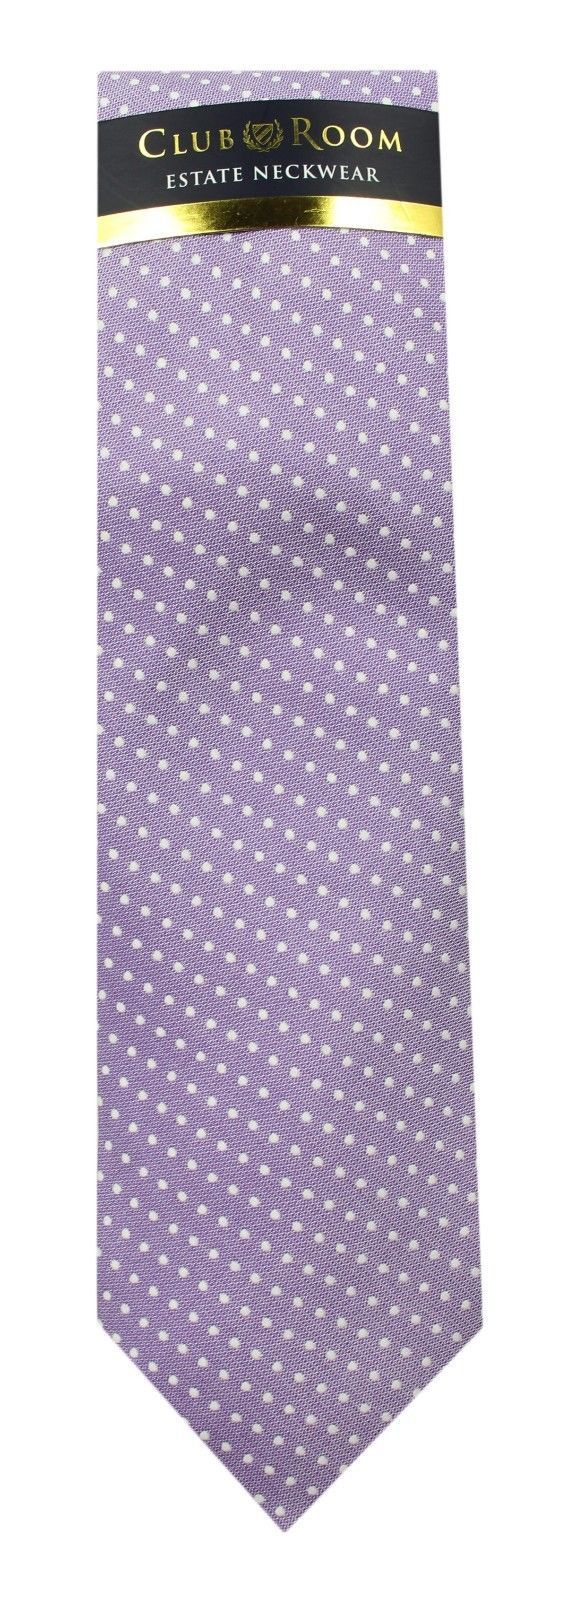 NEW MENS CLUB ROOM ESTATE NECKWEAR SUN POLKA DOT PURPLE COTTON SILK NECK TIE $52